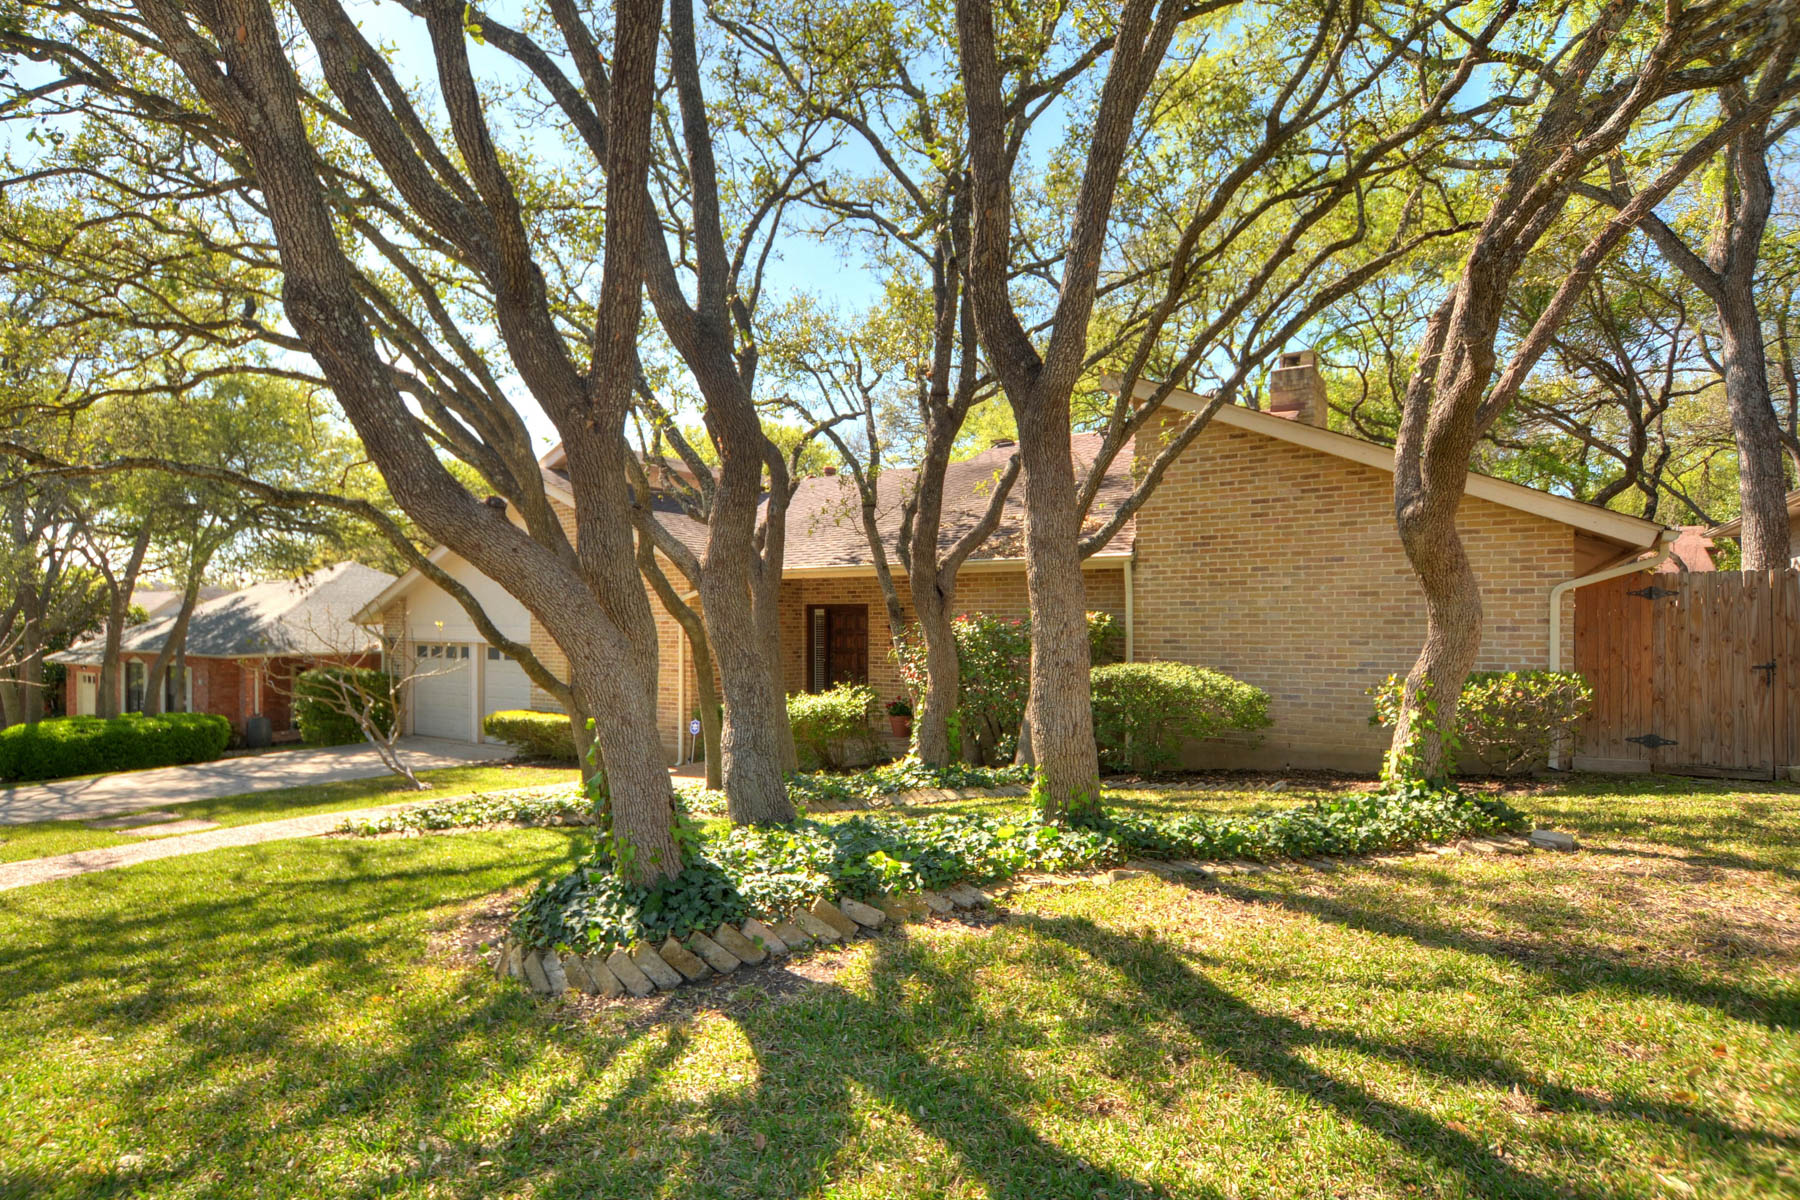 Additional photo for property listing at Elegant Home in Whispering Oaks 11415 Whisper Breeze San Antonio, Texas 78230 Estados Unidos